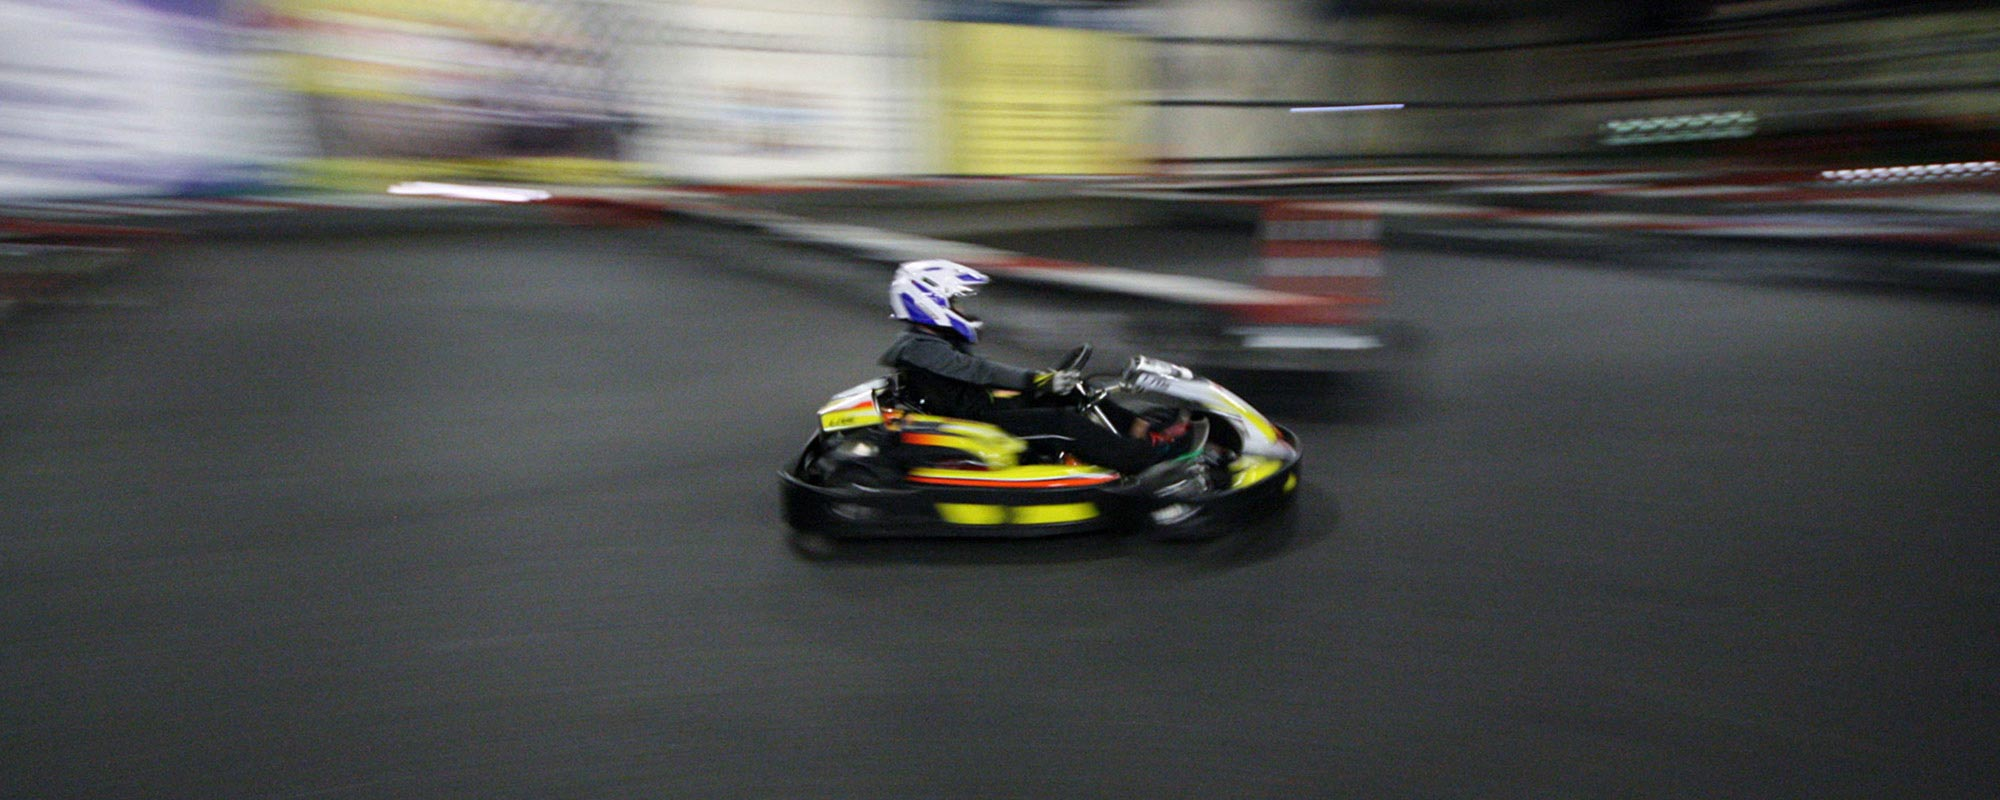 ebafkc-juniorkarting-2000x800-21